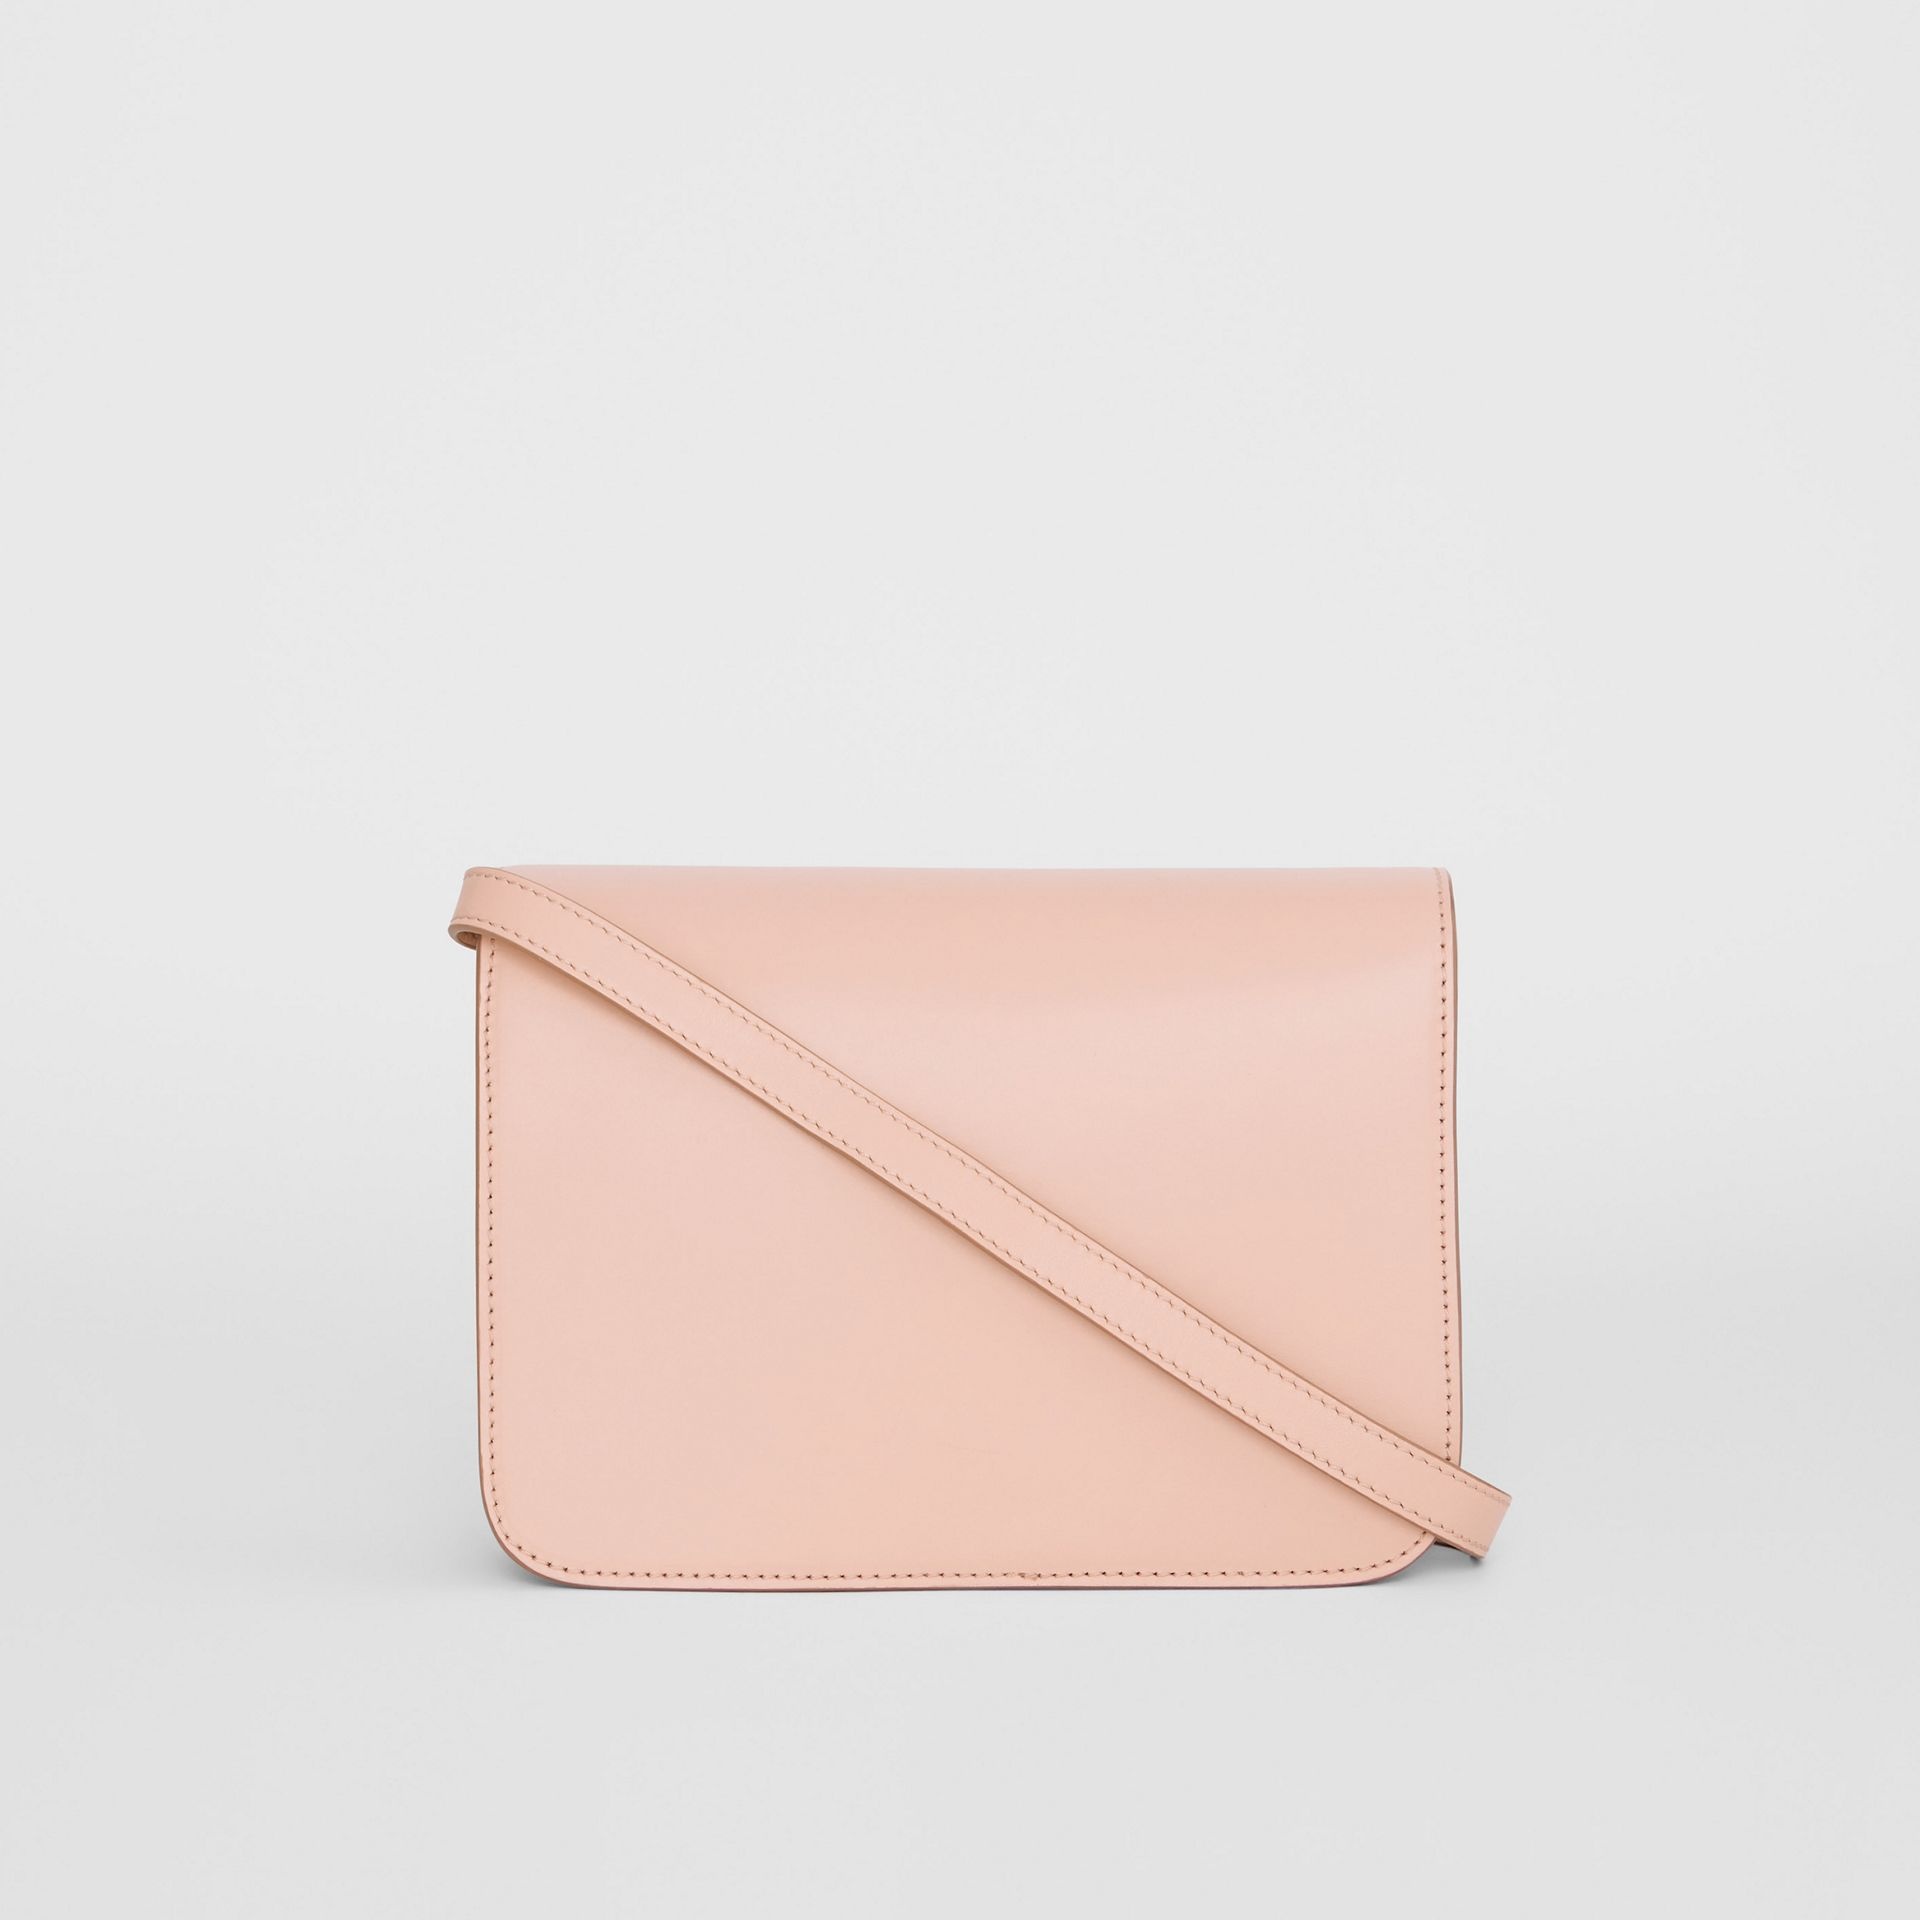 Small Leather TB Bag in Rose Beige - Women | Burberry Canada - gallery image 7